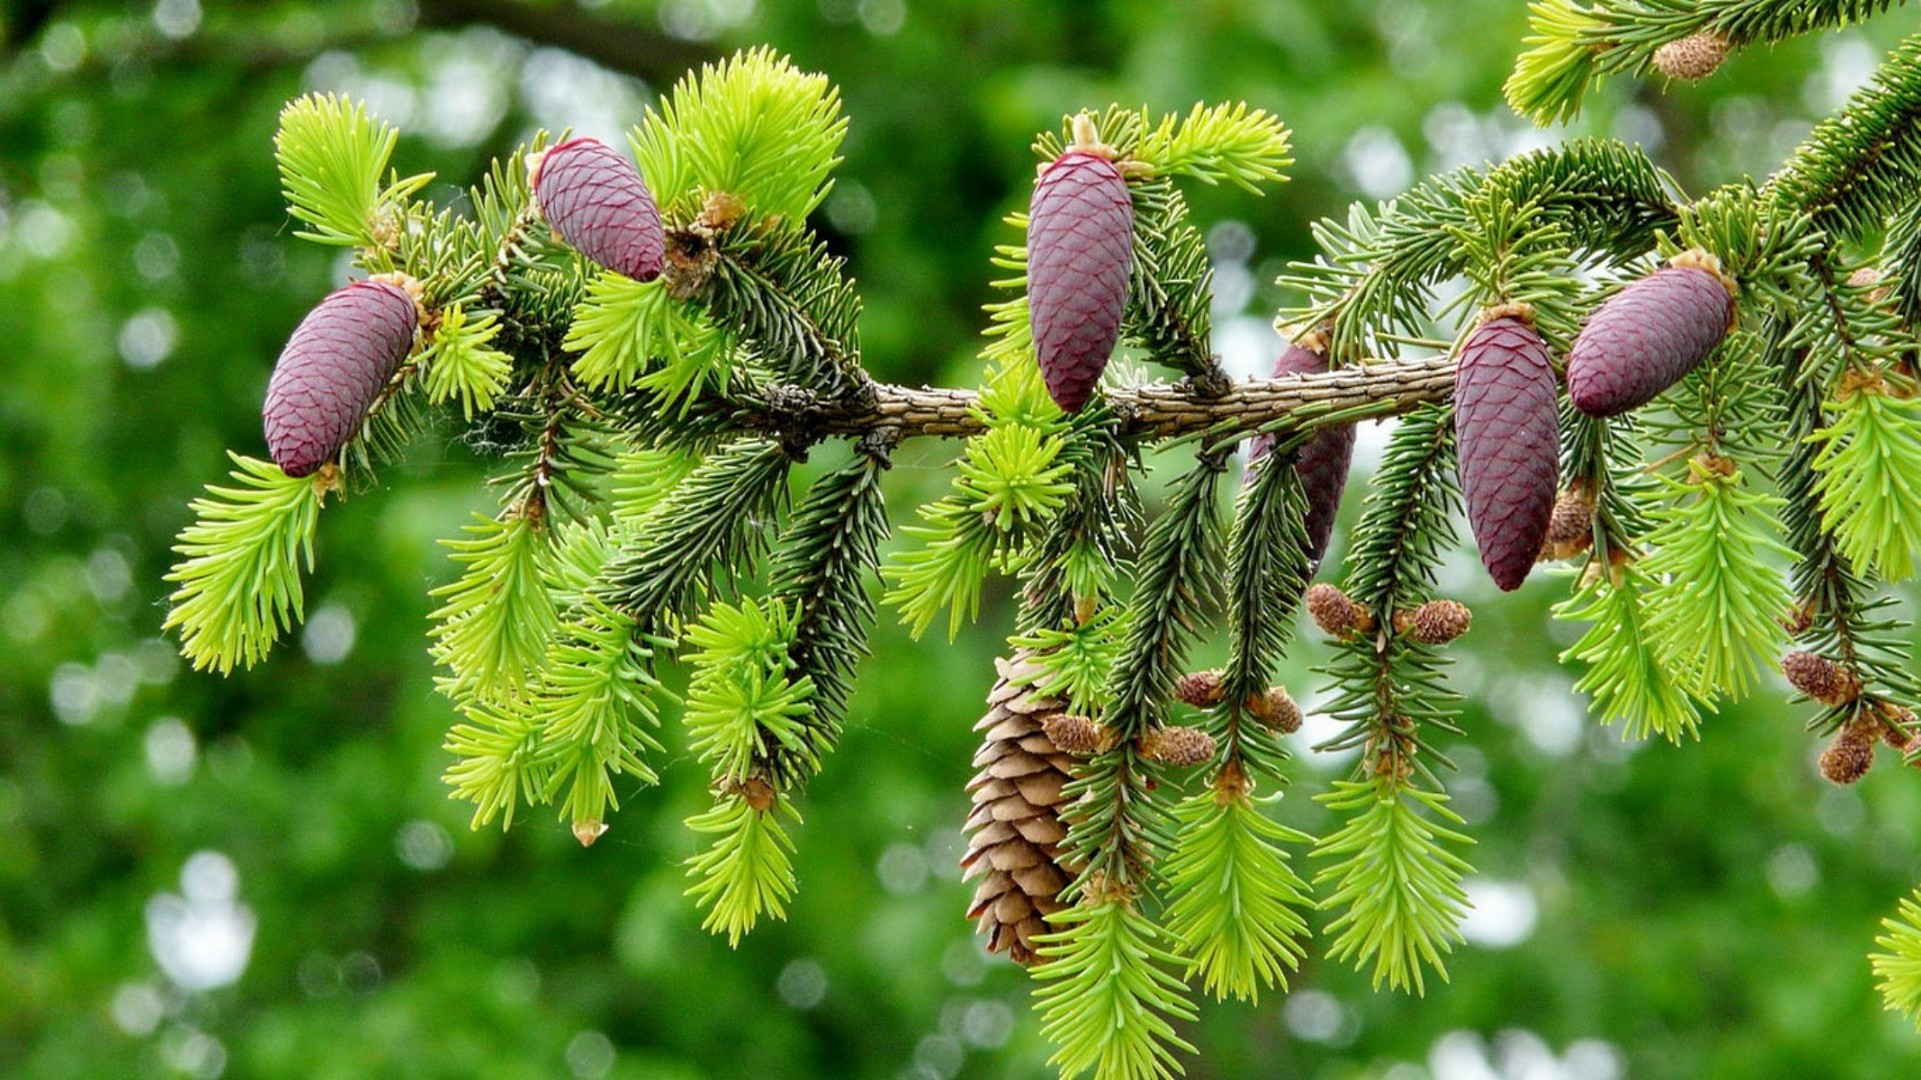 landscapes tree branch nature cone flora evergreen season spruce needle conifer fir coniferous leaf pine close-up outdoors winter decoration bright